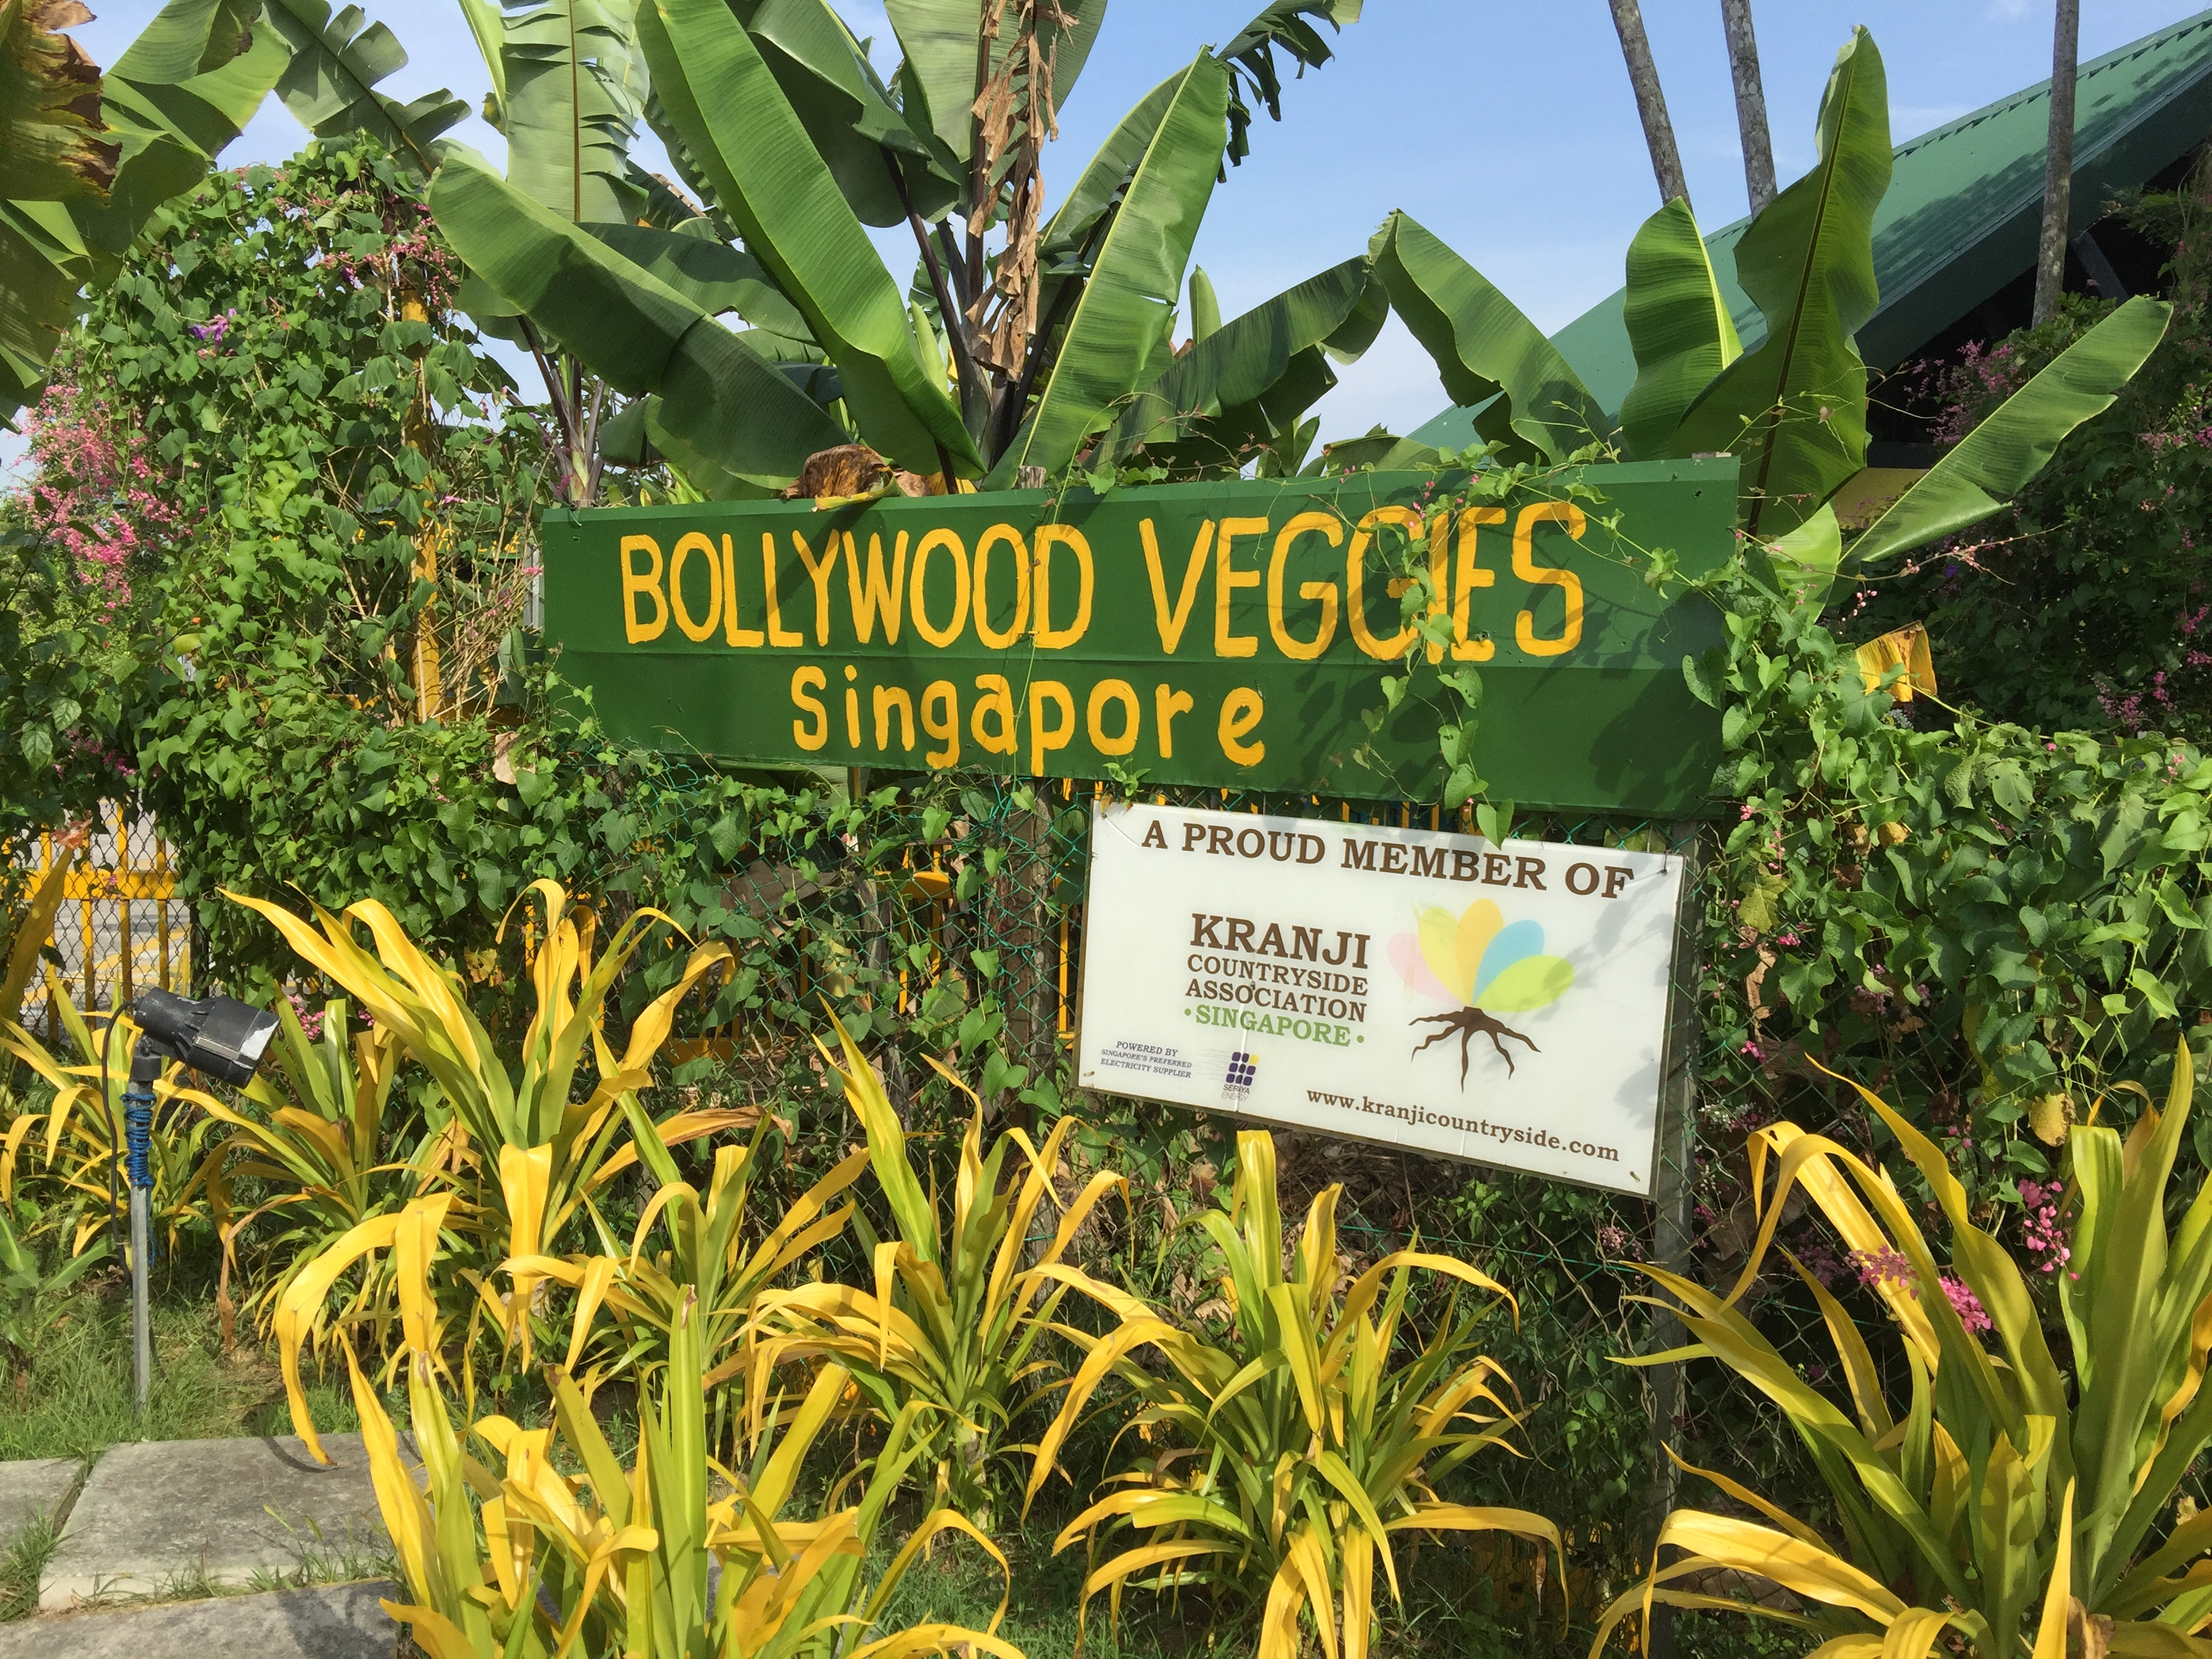 Escape to Nature in Singapore: Bollywood Veggies